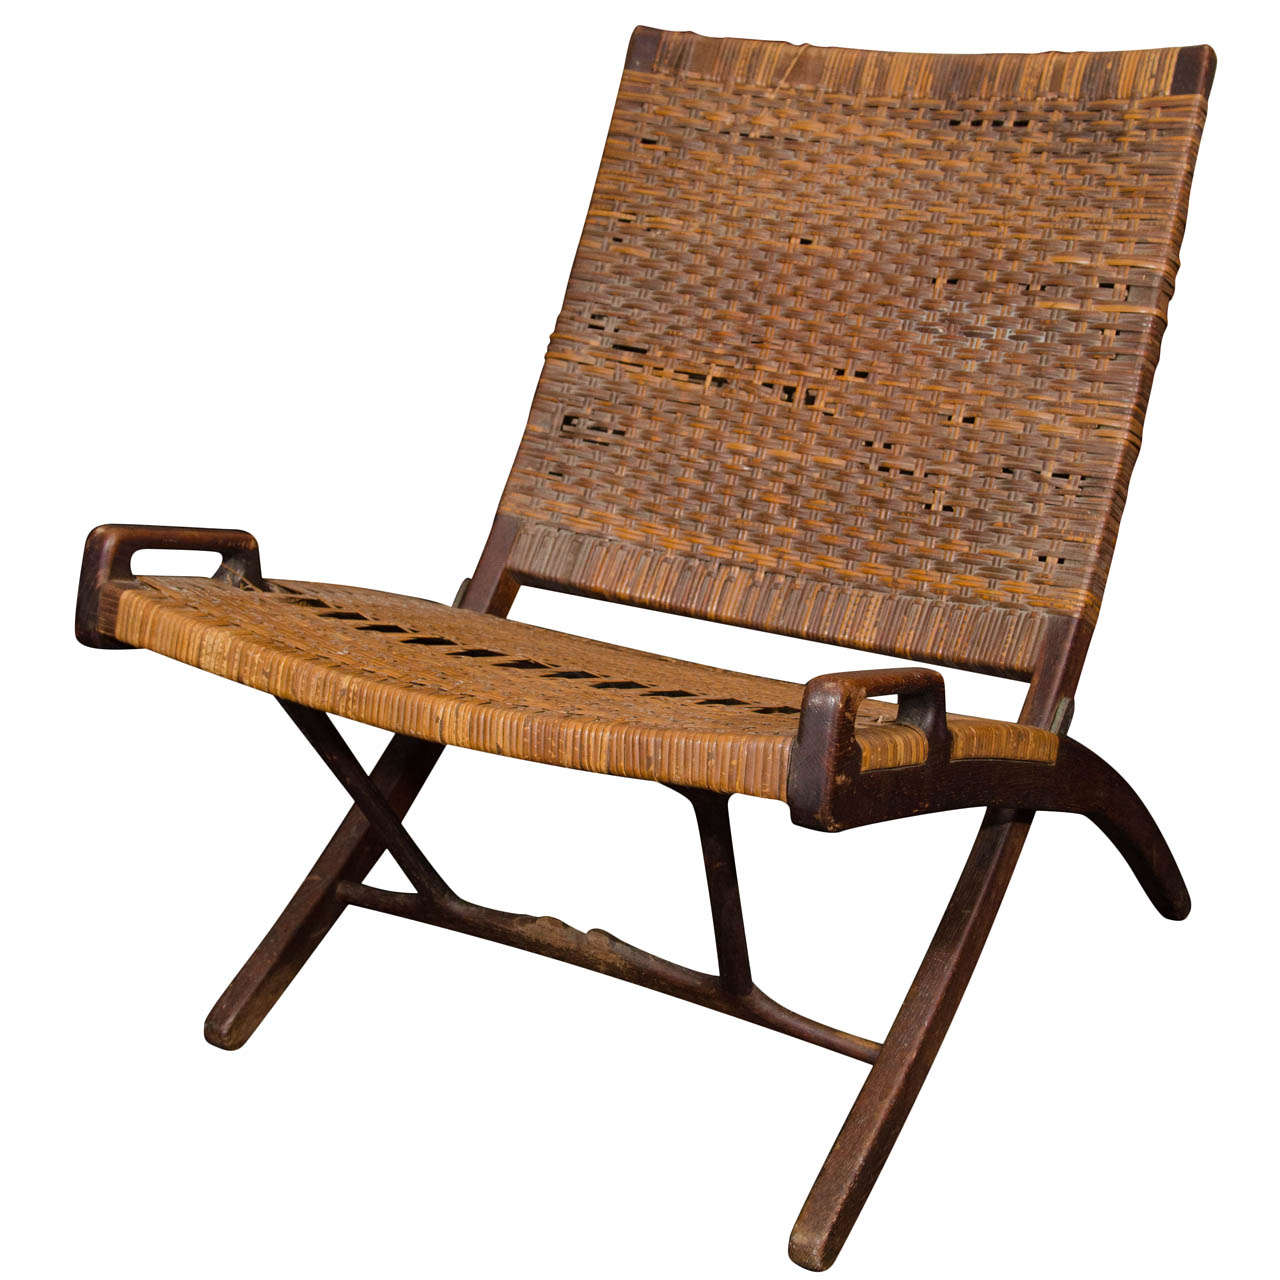 Home > Furniture > Seating > Chairs. Full resolution  image, nominally Width 1280 Height 1280 pixels, image with #956136.